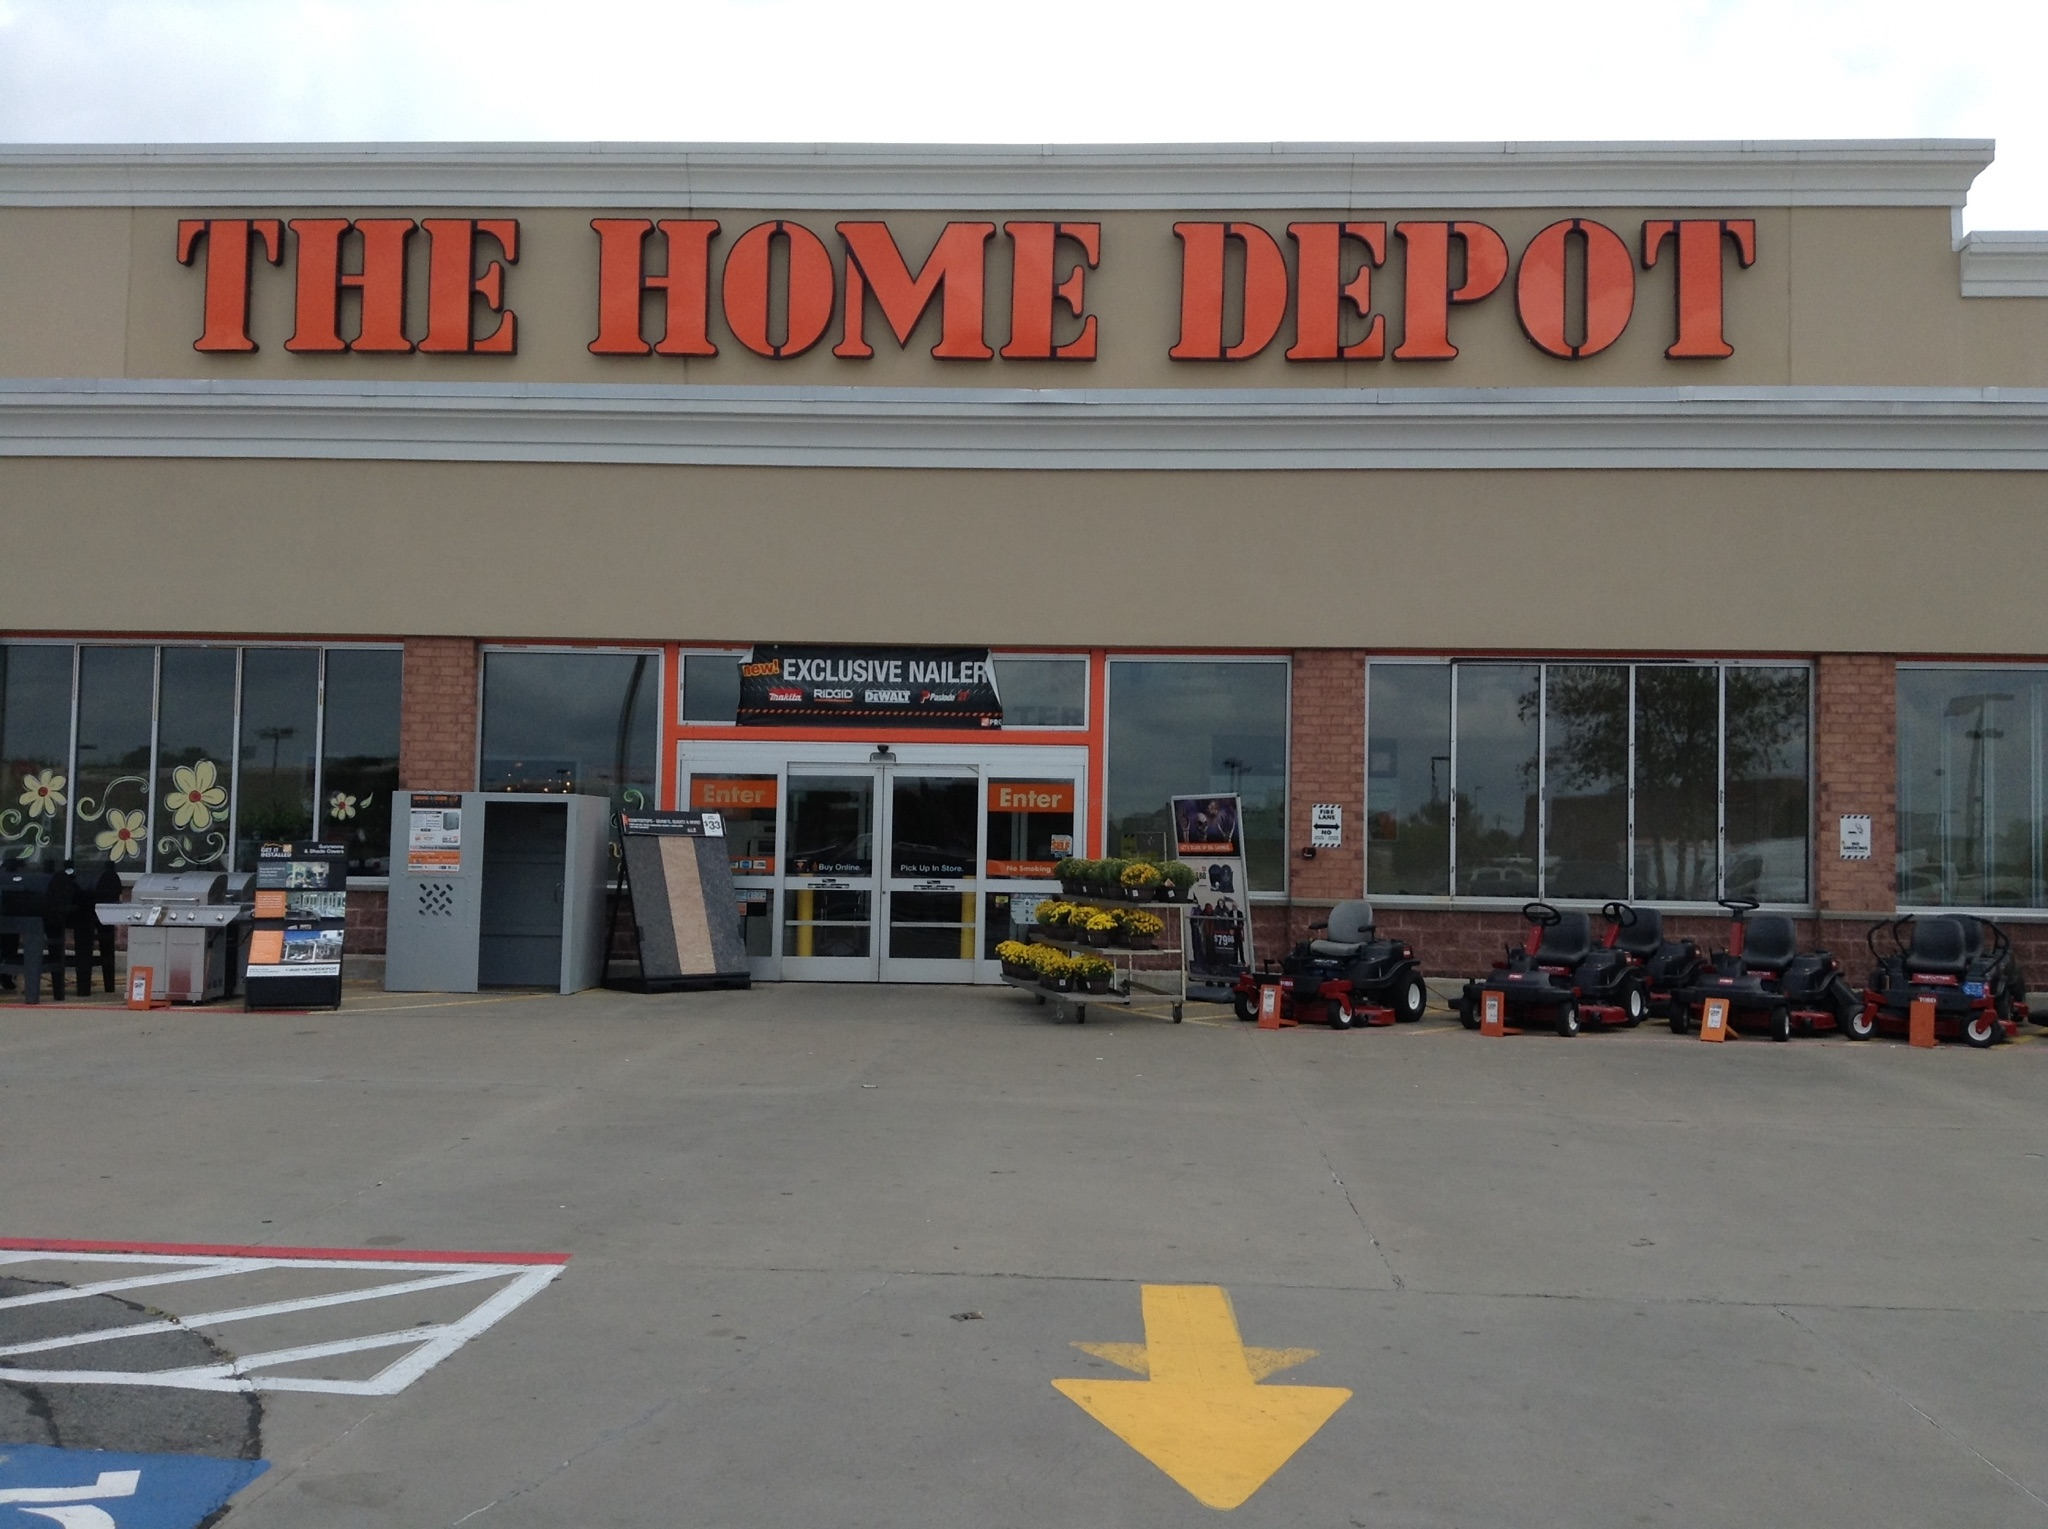 the home depot coupons conway ar near me 8coupons. Black Bedroom Furniture Sets. Home Design Ideas